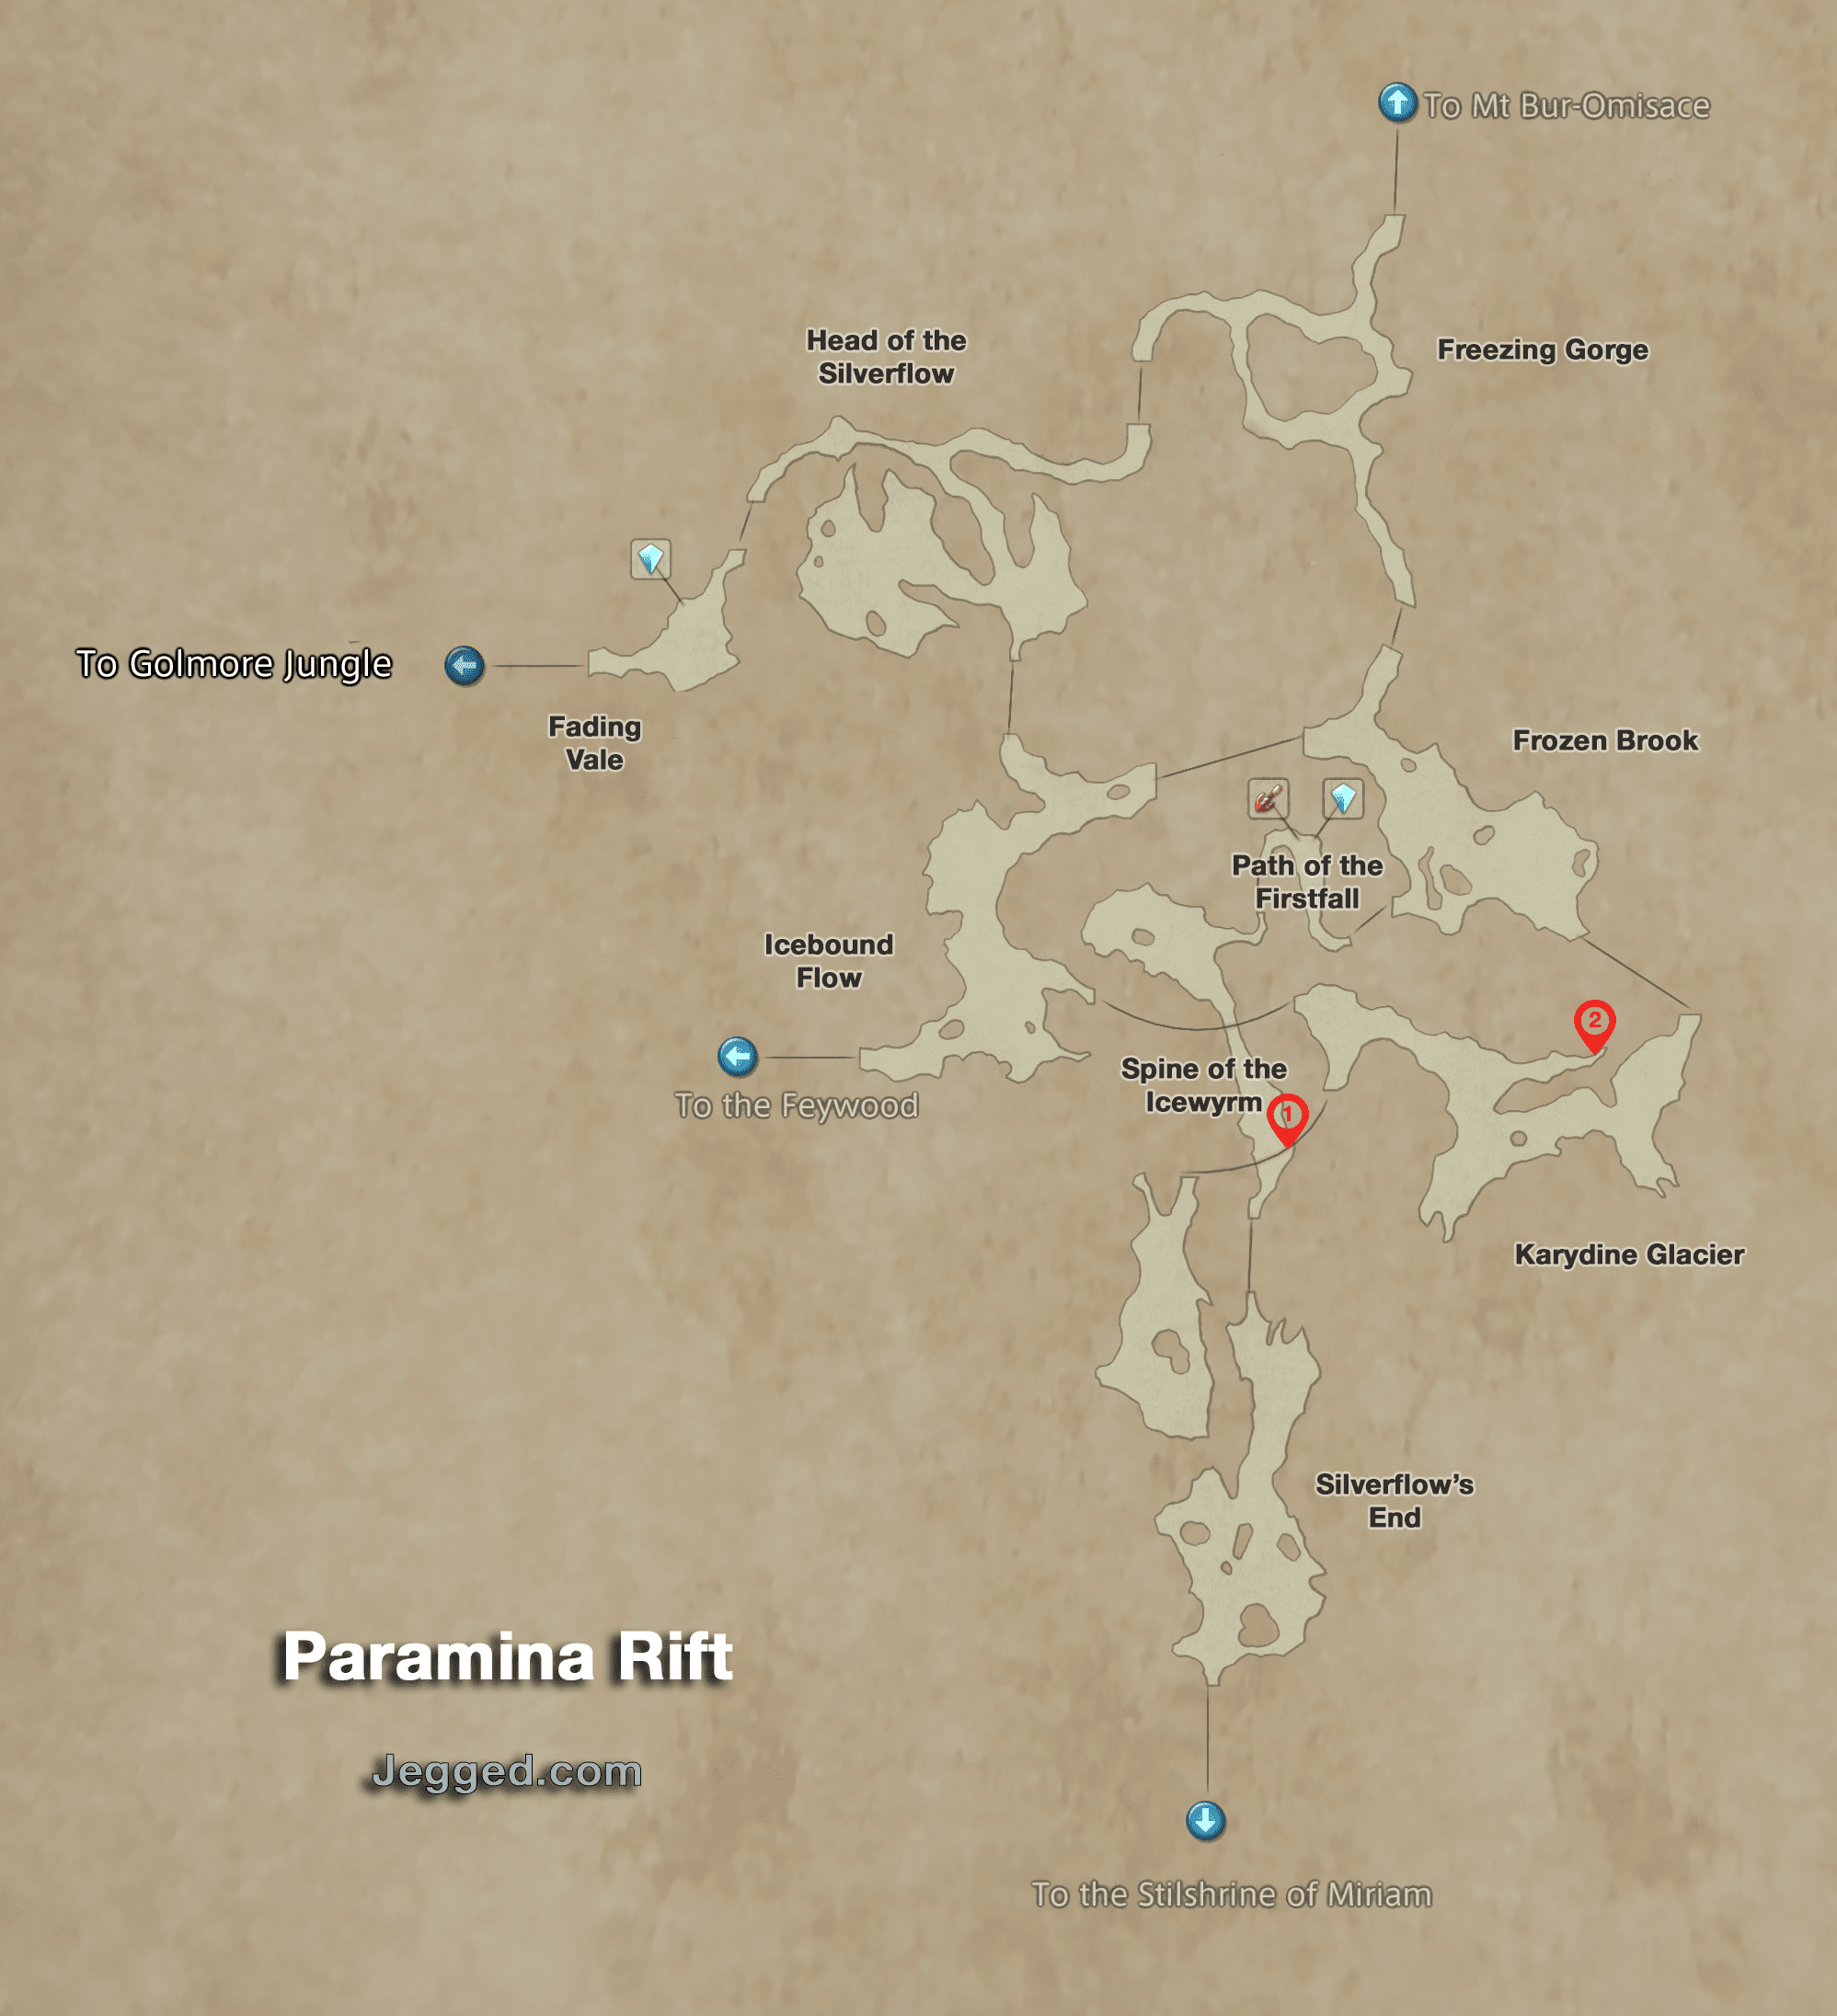 Map of the Paramina Rift